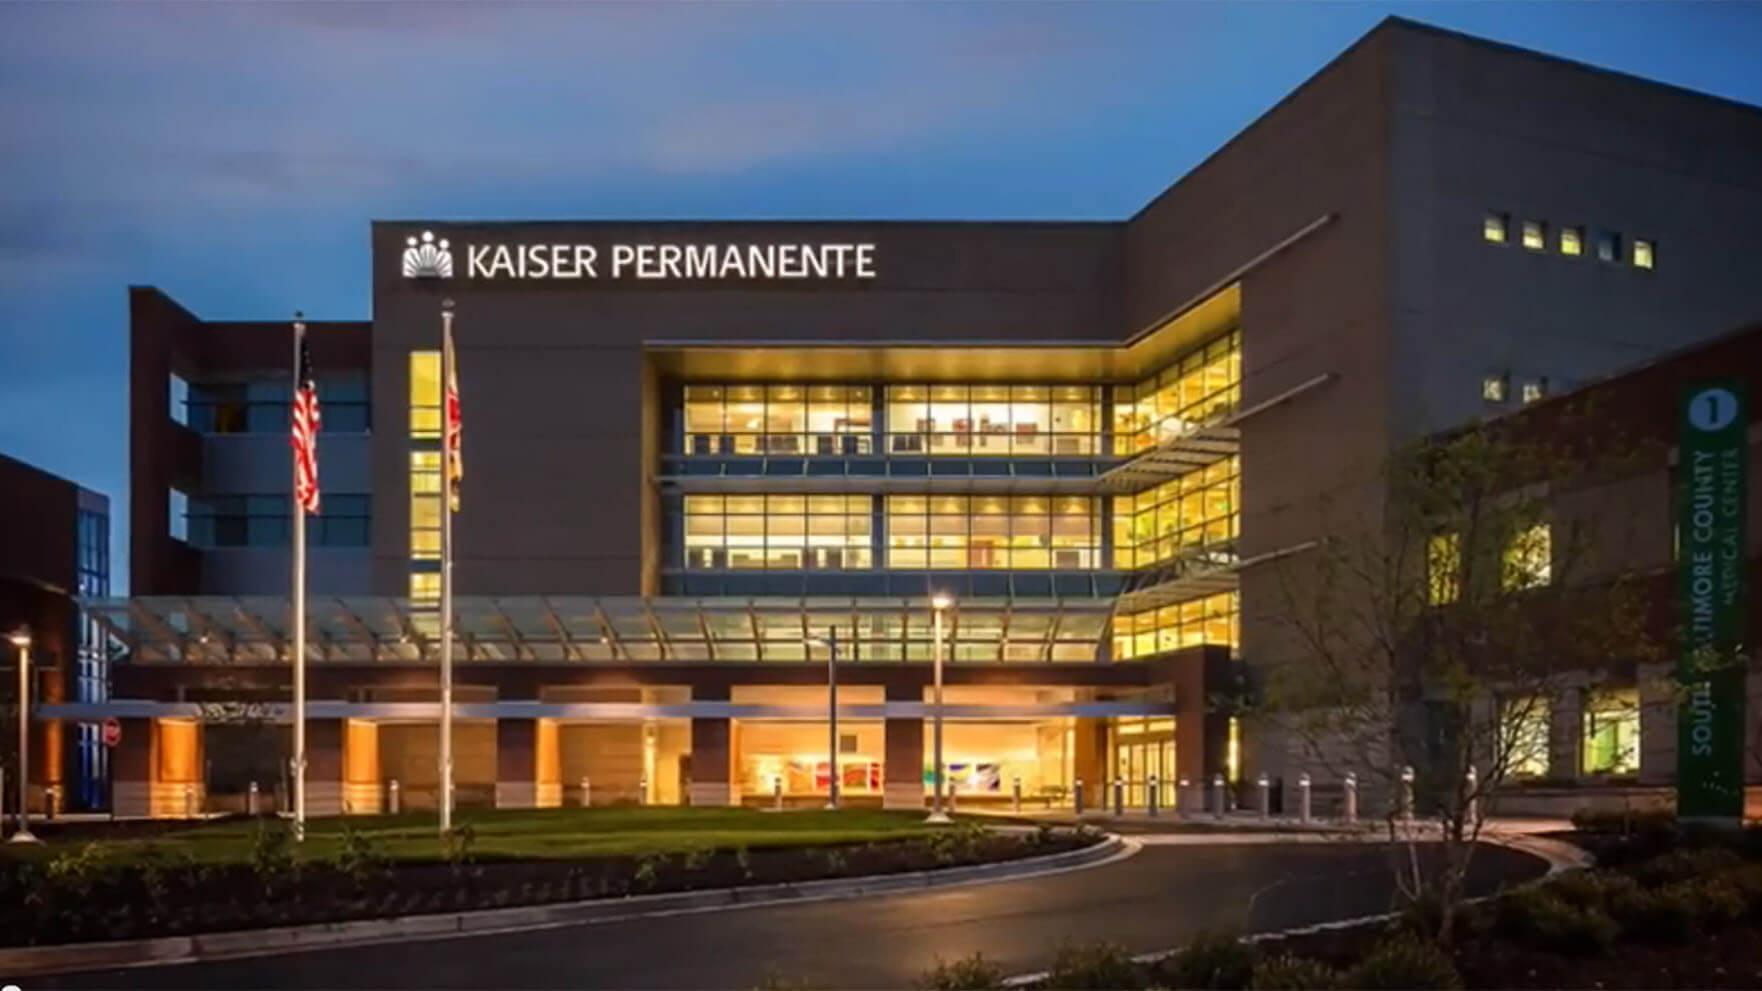 All About Ceo Of Kaiser Permanente Says Mental Illness Is A Silent